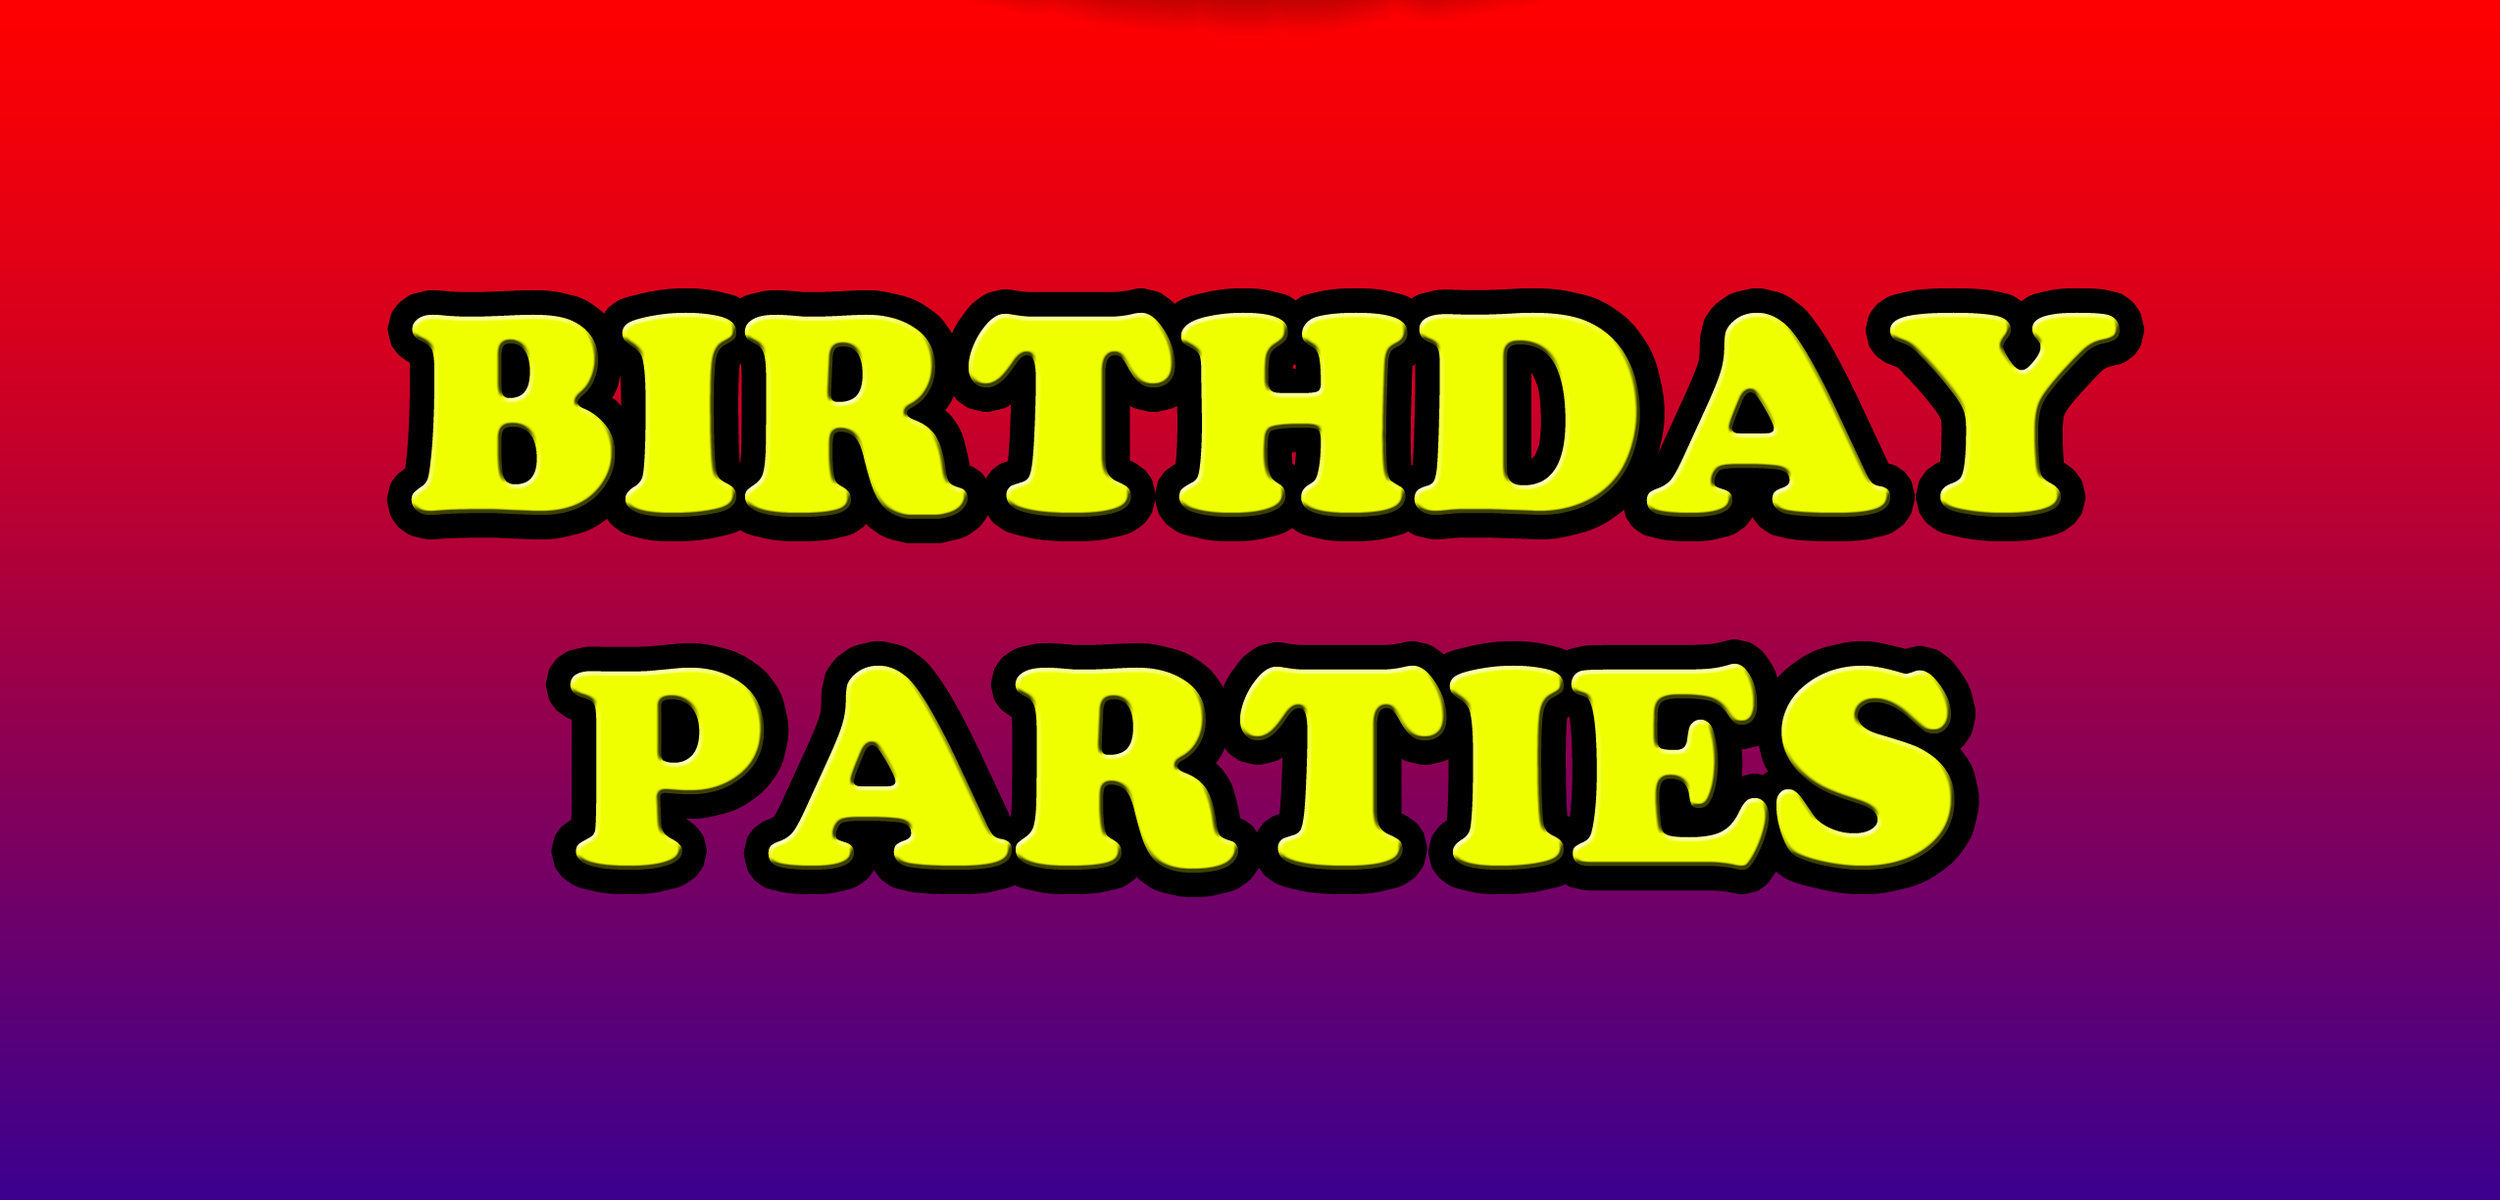 Perfect for that Special Birthday or Celebration -